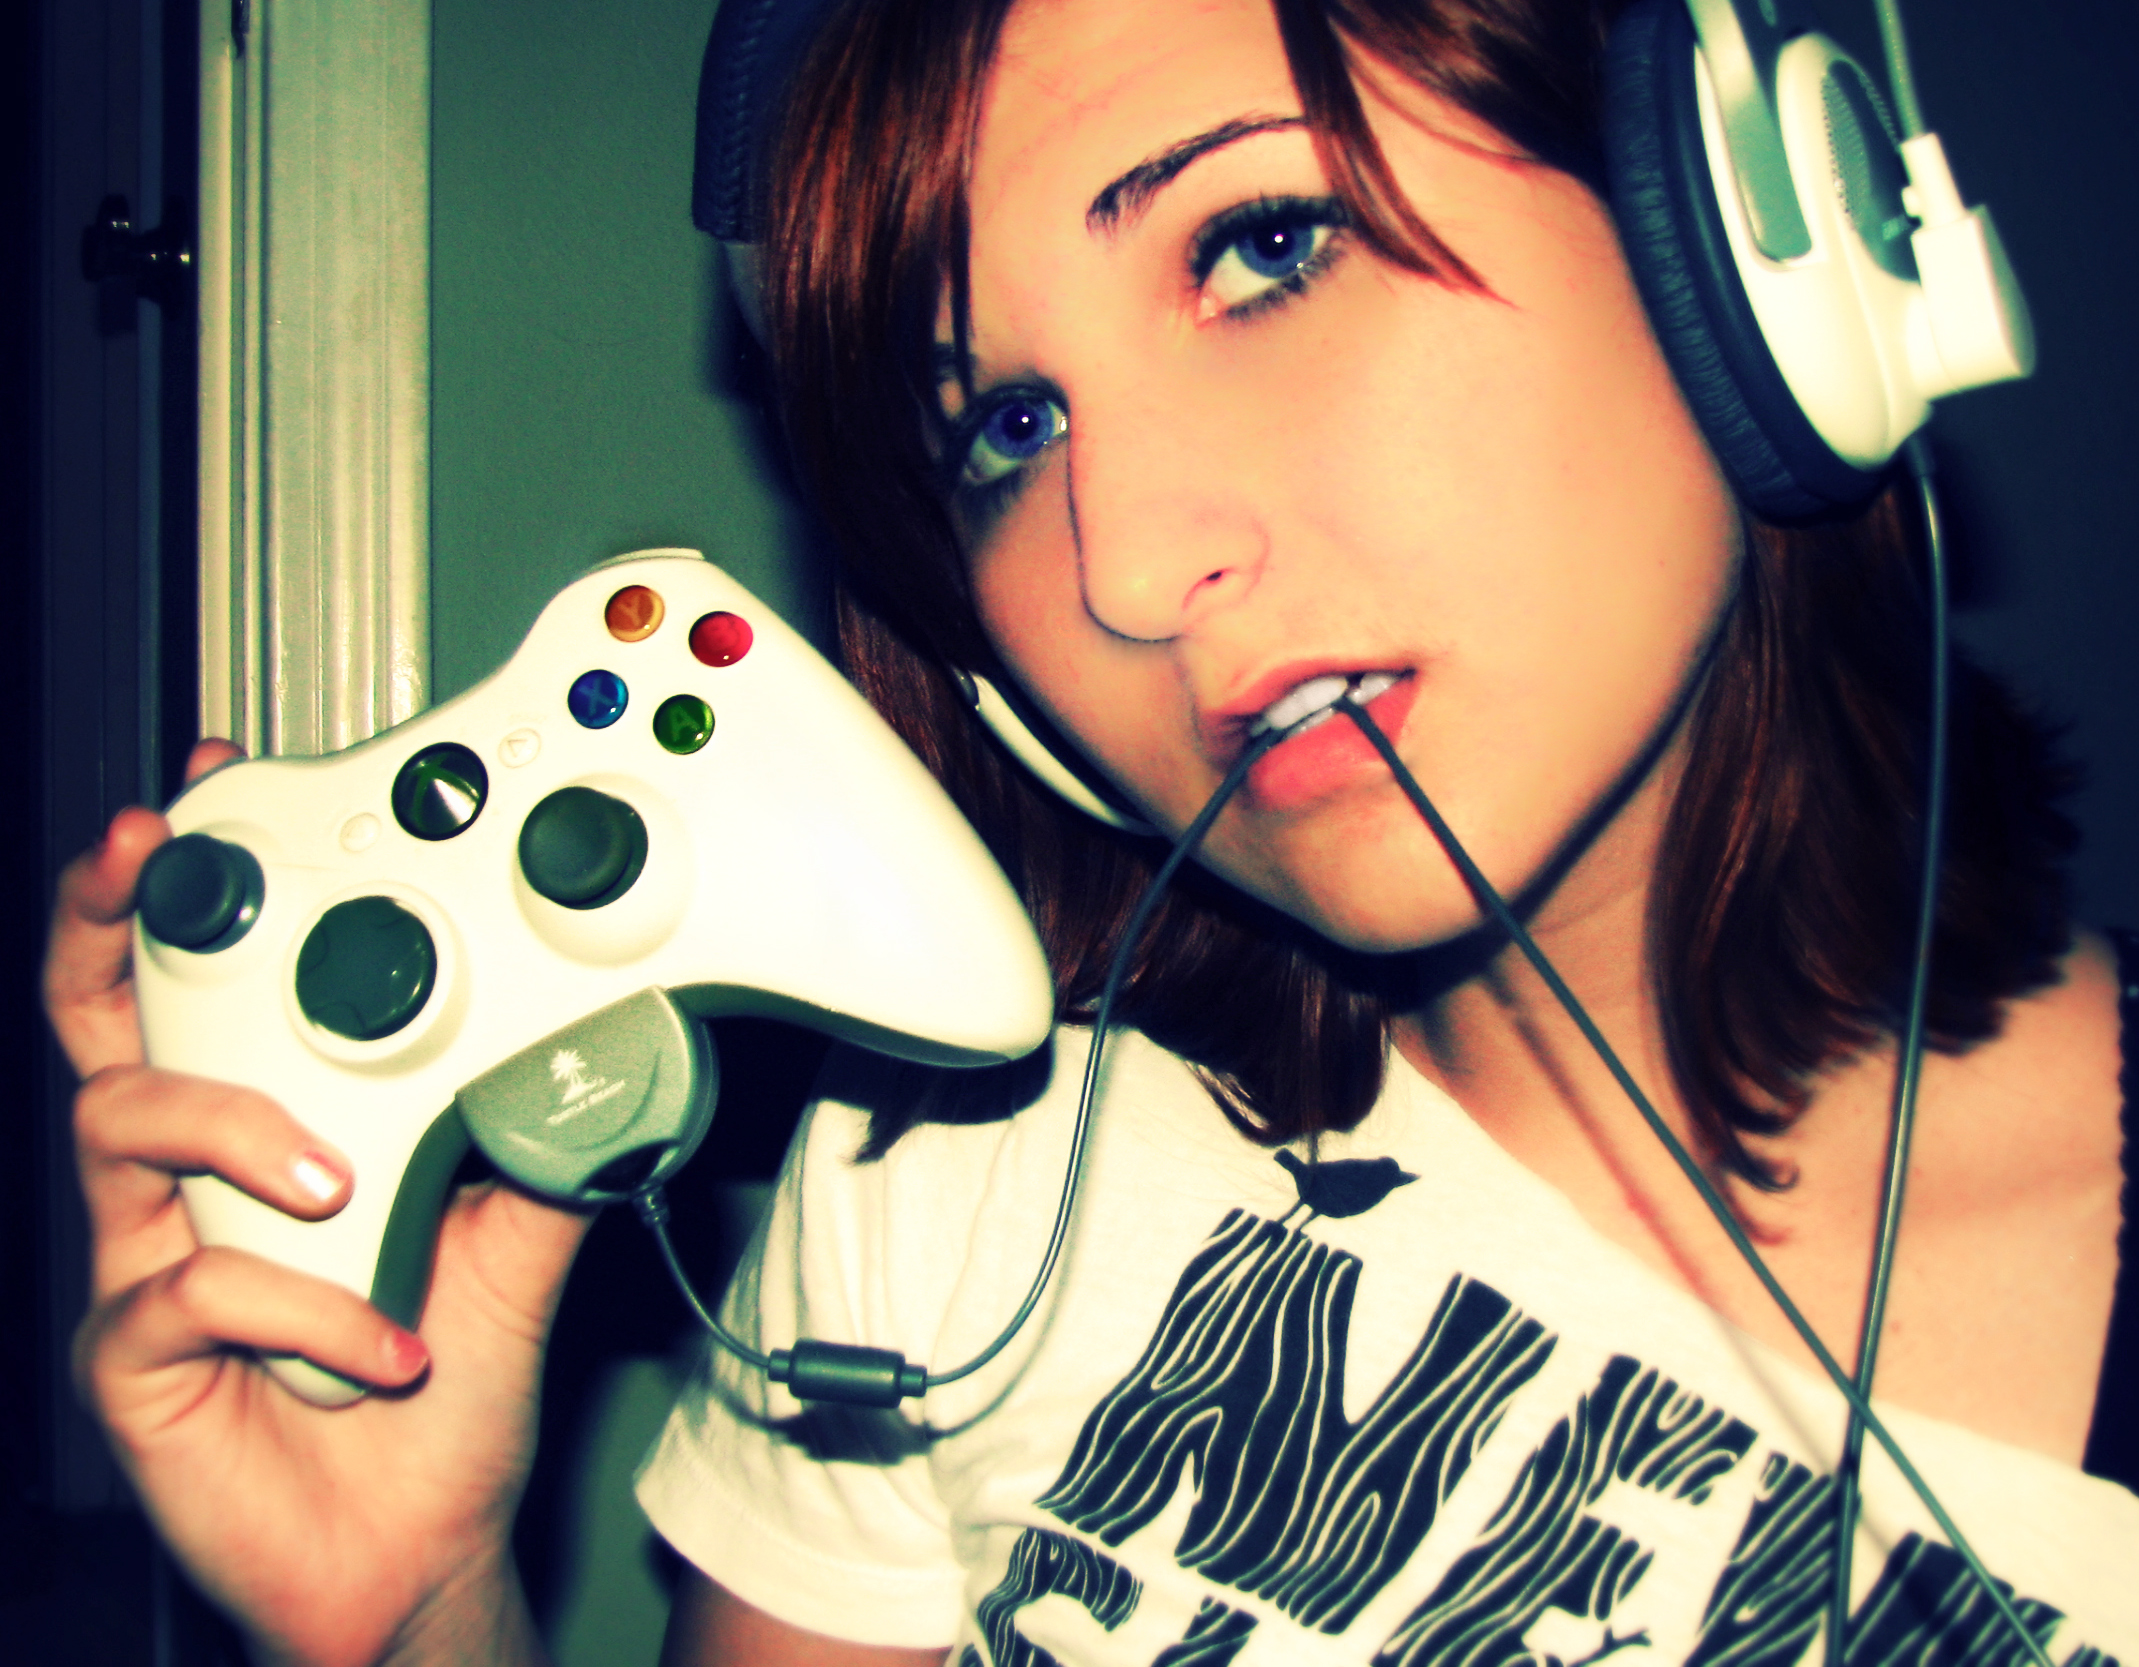 Hot Gaming Girls